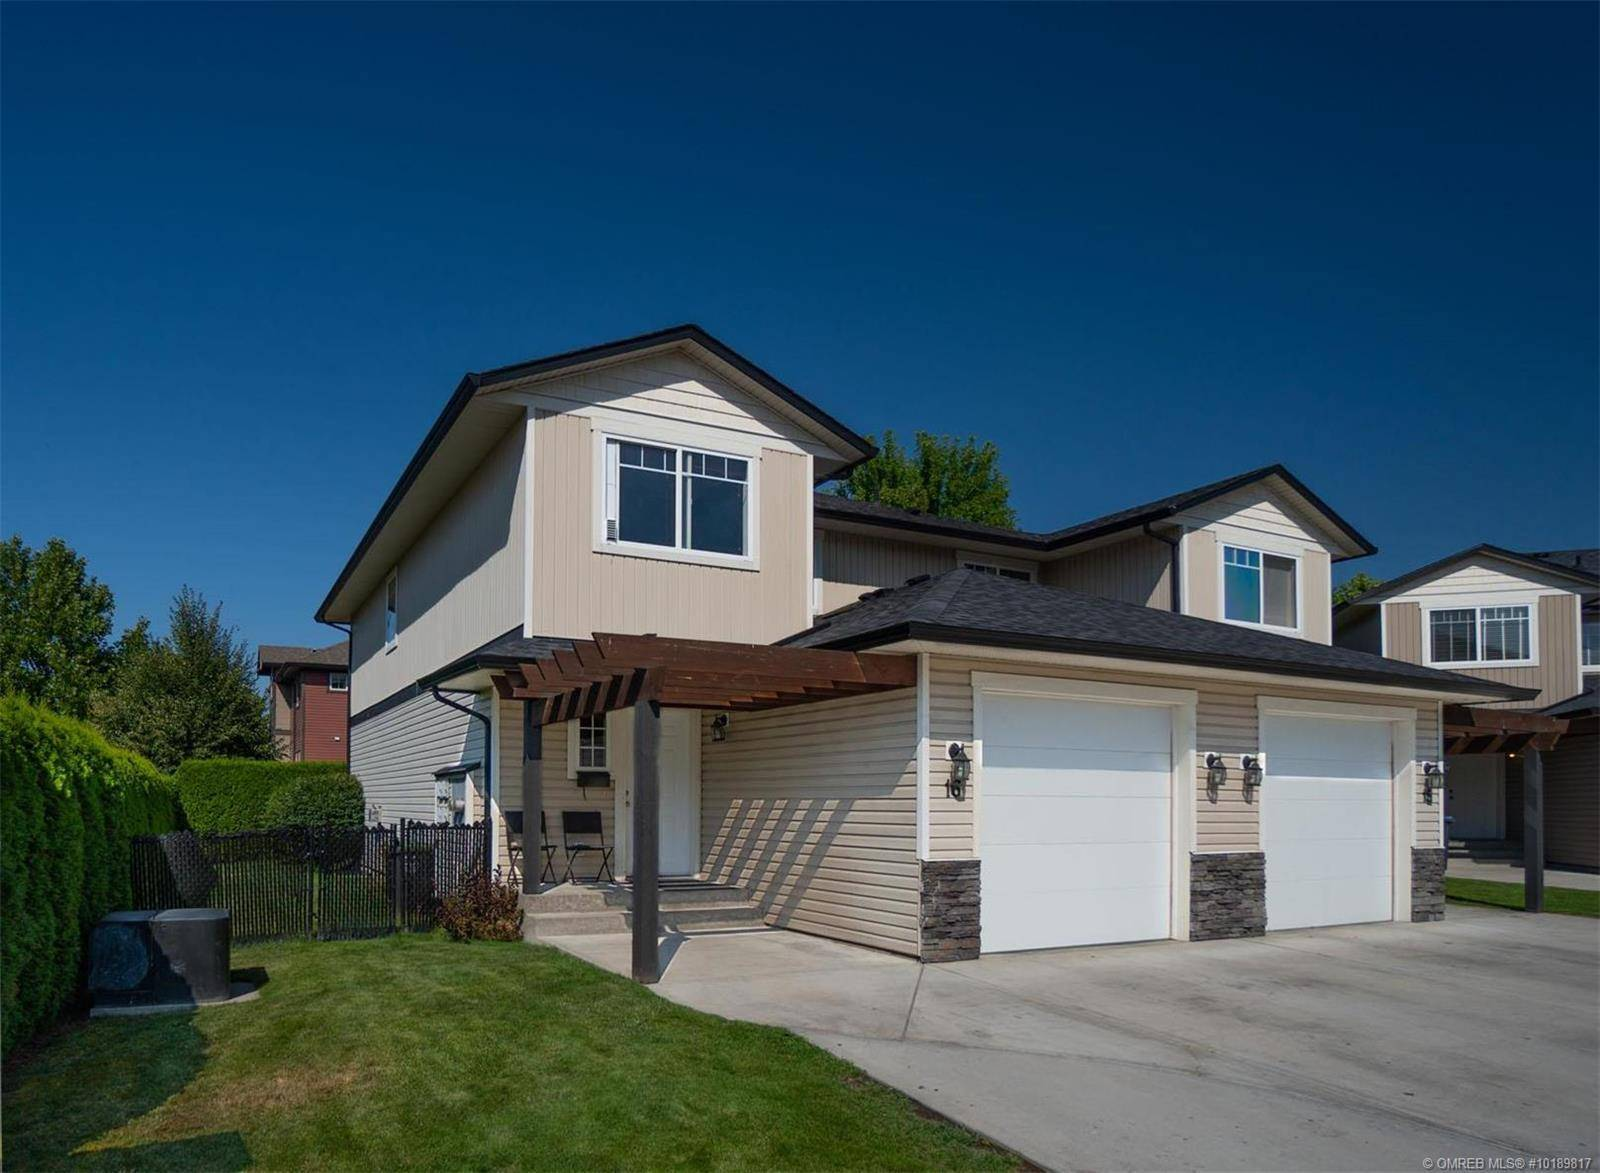 Townhouse for sale at 180 Mccurdy Rd East Unit 16 Kelowna British Columbia - MLS: 10189817